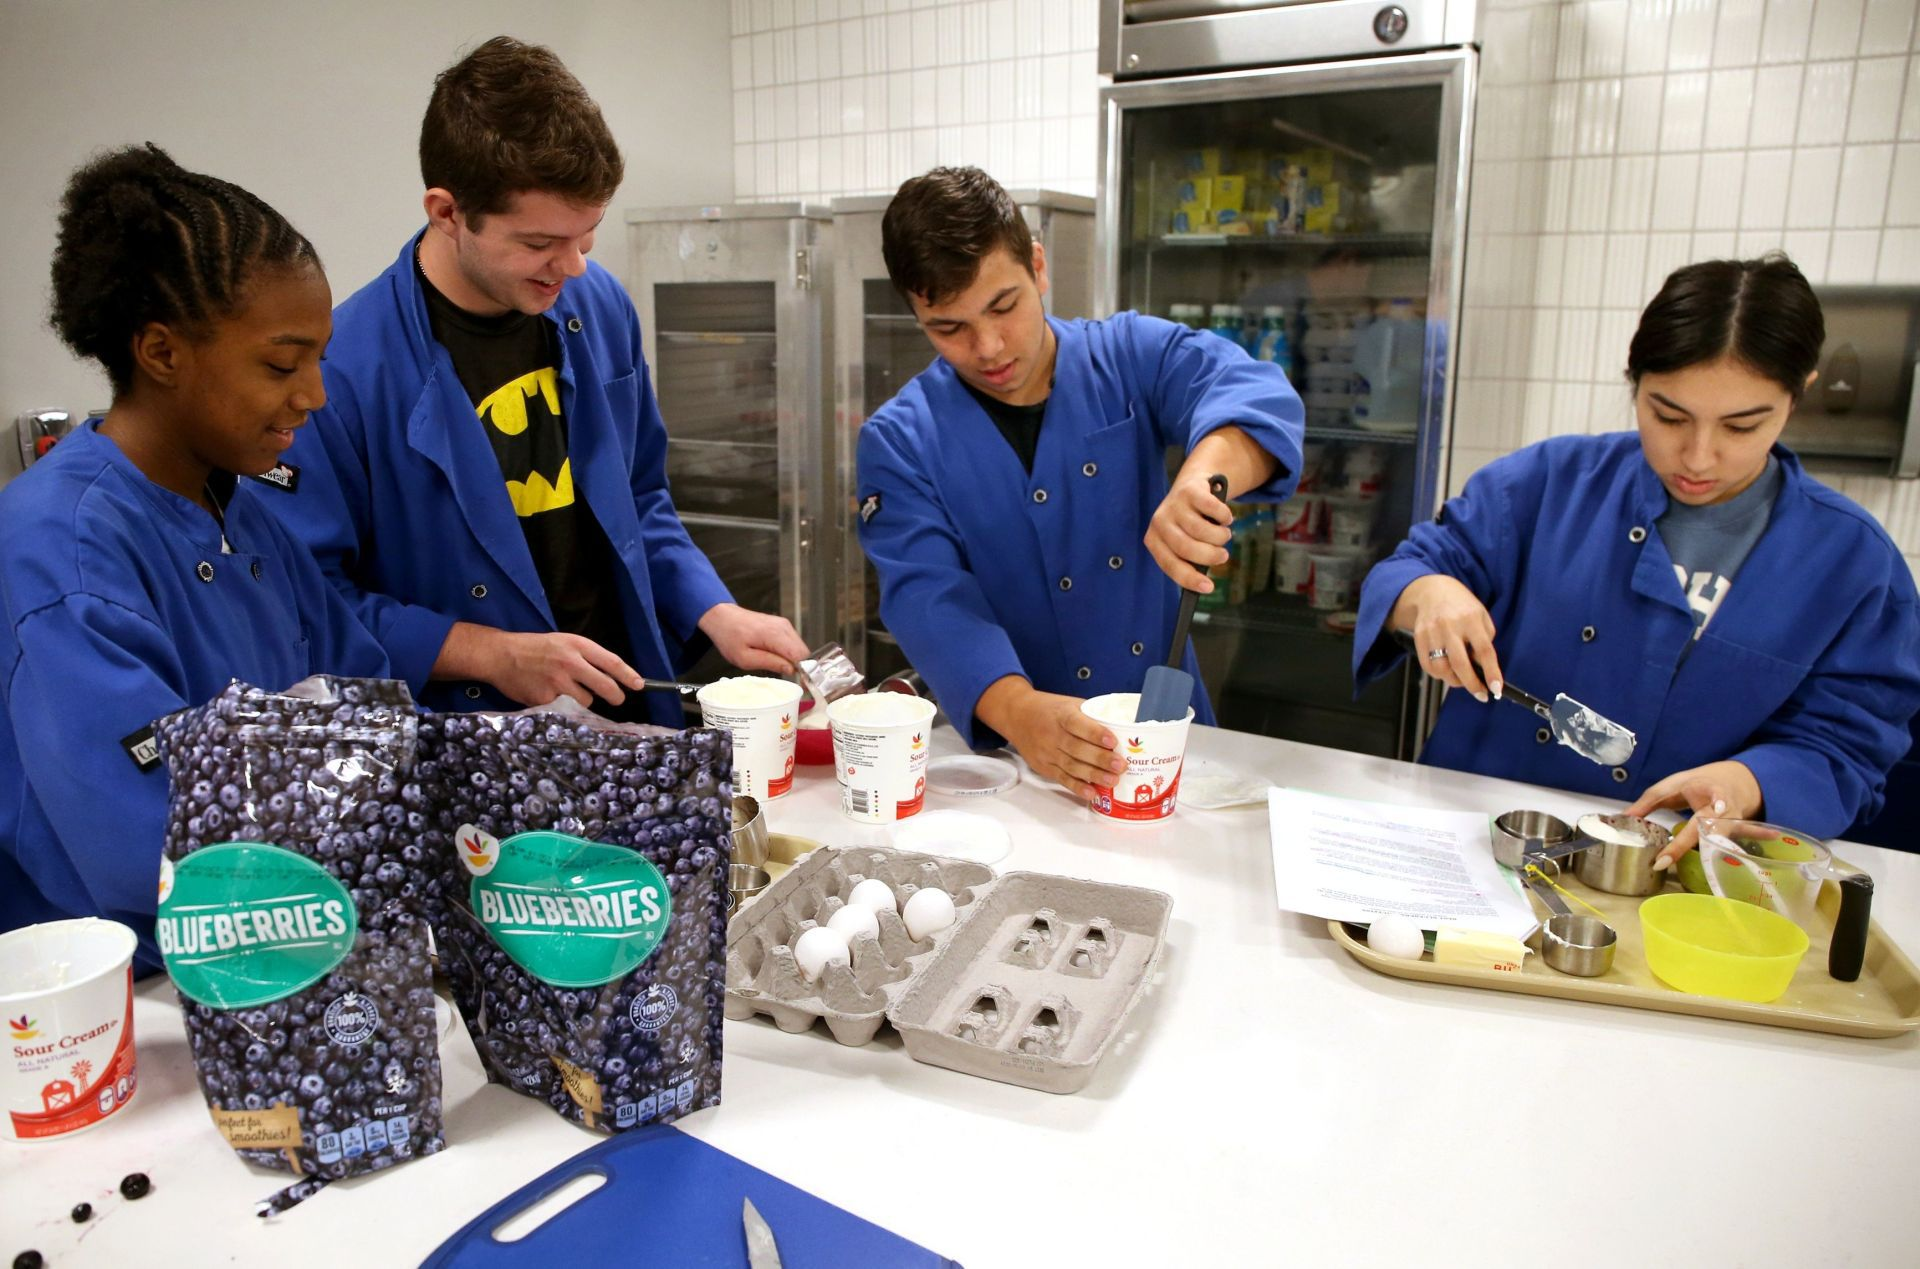 The students work in teams of four to prepare muffins in the spanking new culinary lab.